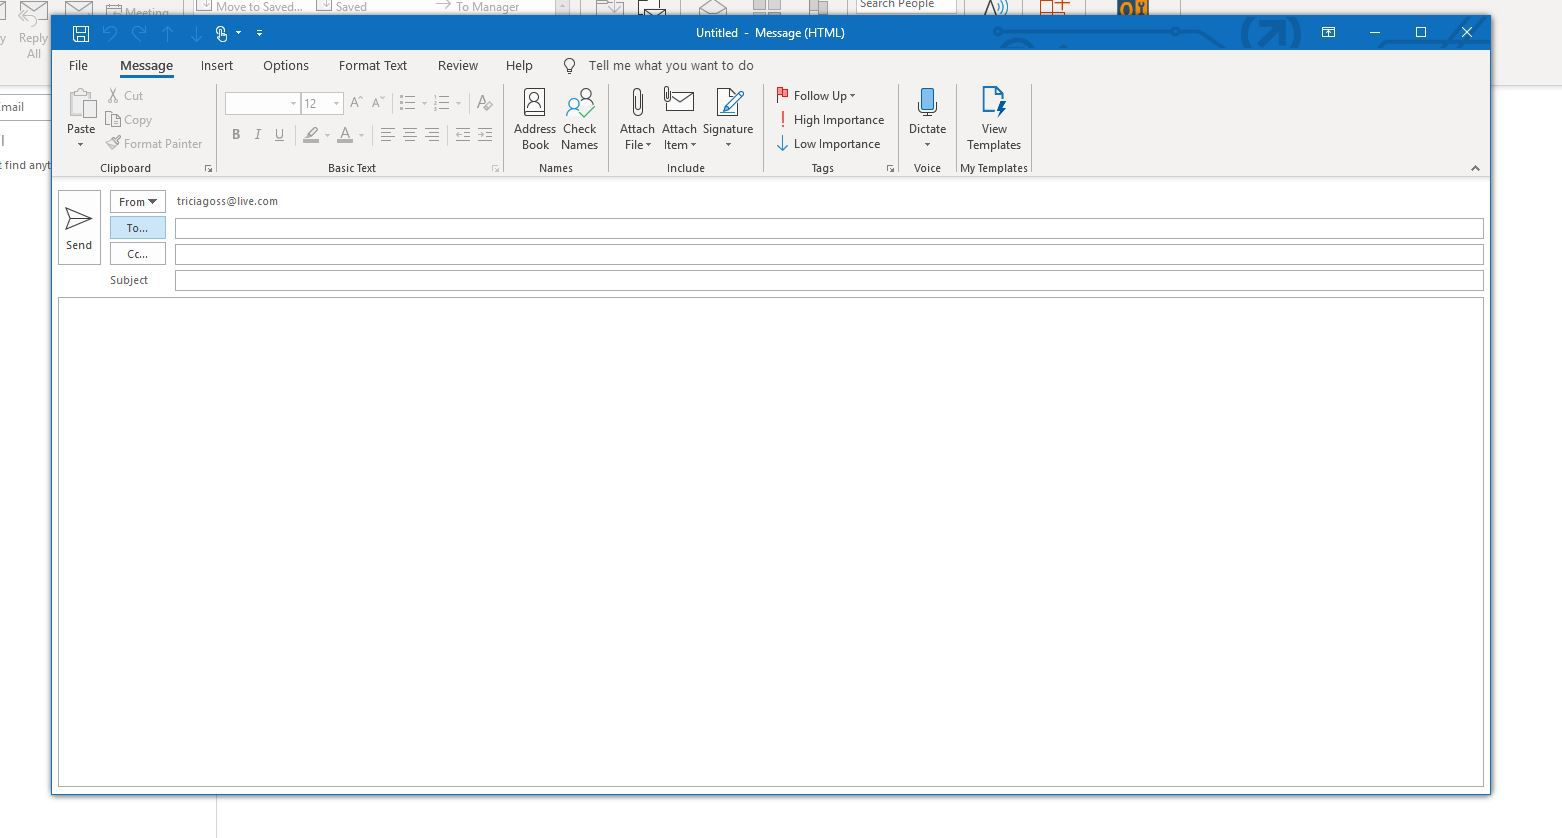 How to Email Every Contact in Your Outlook Address Book